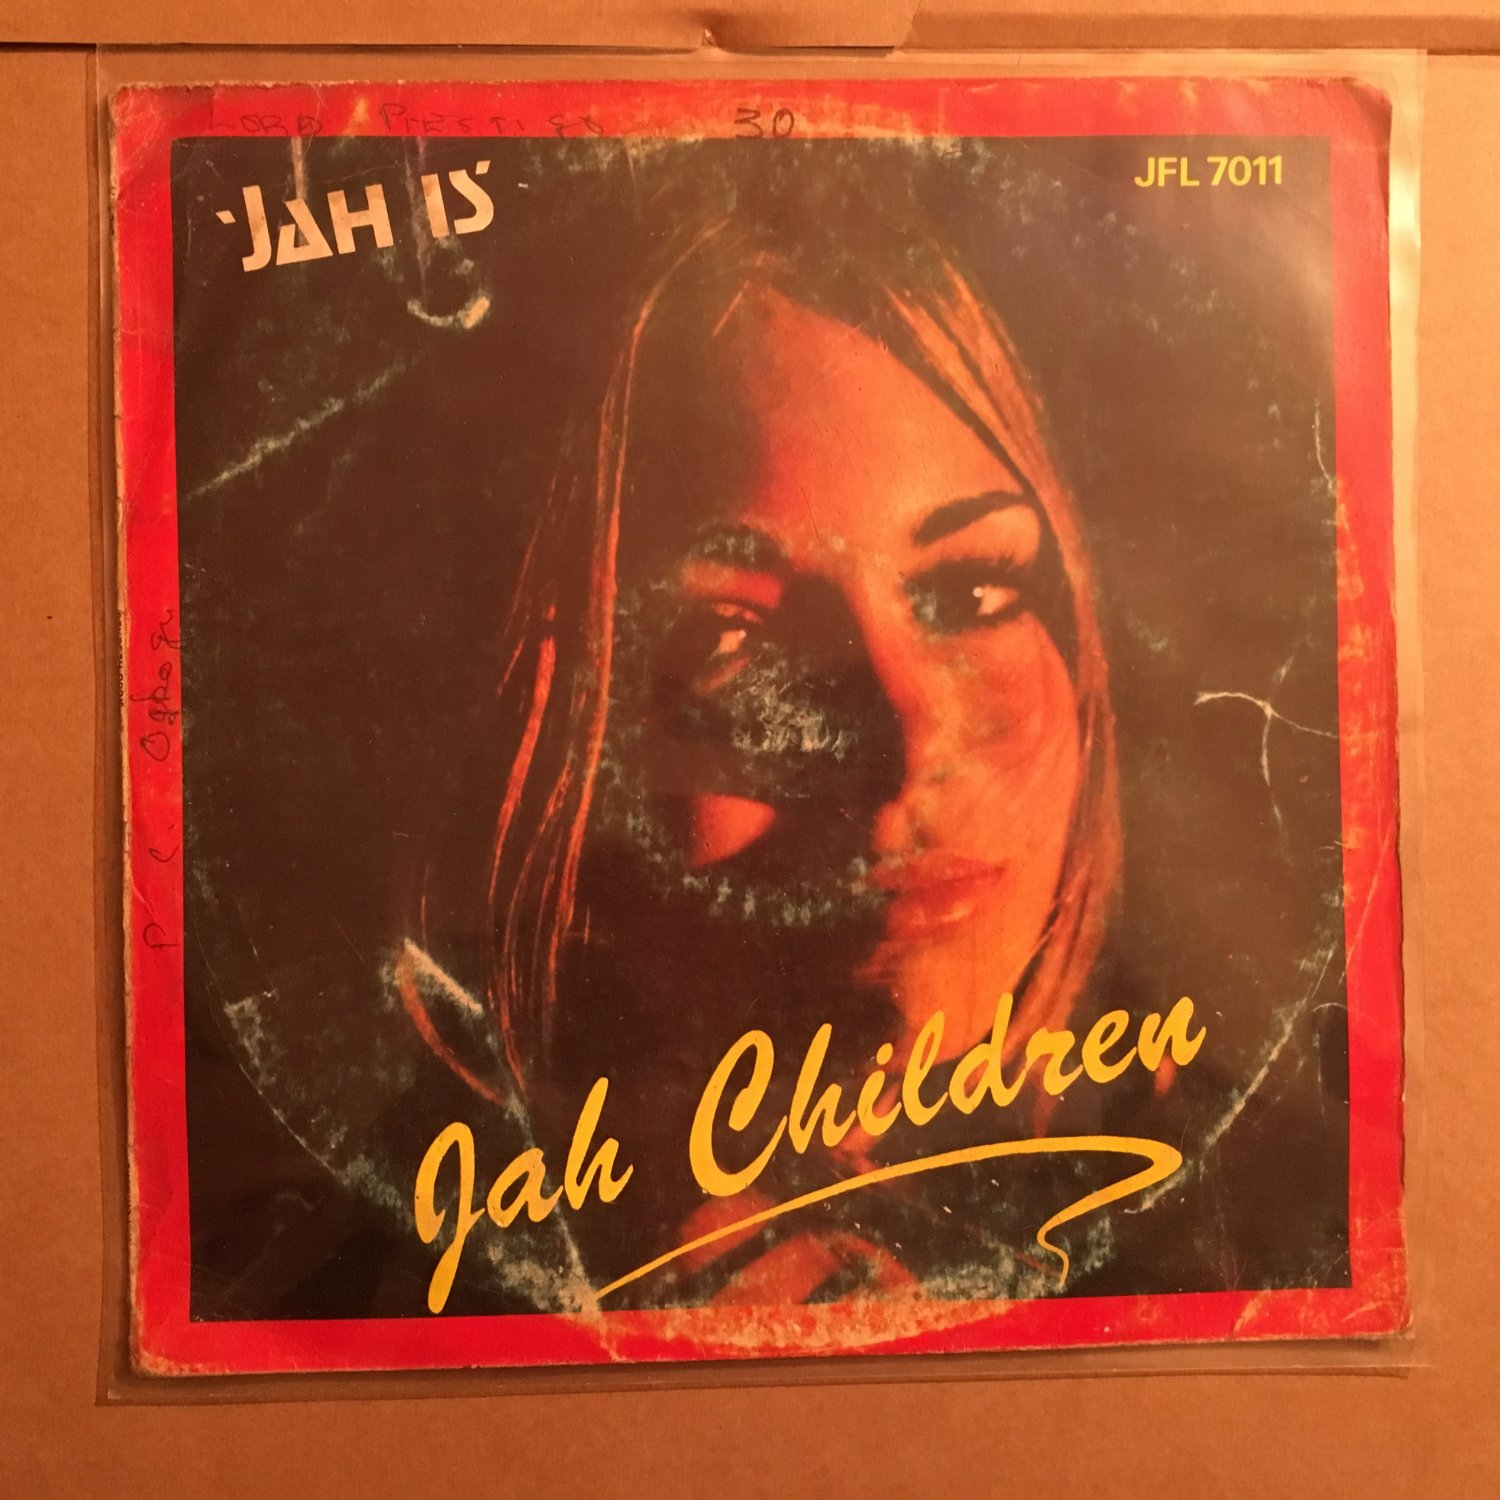 THE JAH CHILDREN LP Jah is NIGERIA REGGAE AFRO FUNK mp3 LISTEN JICCO FUNK